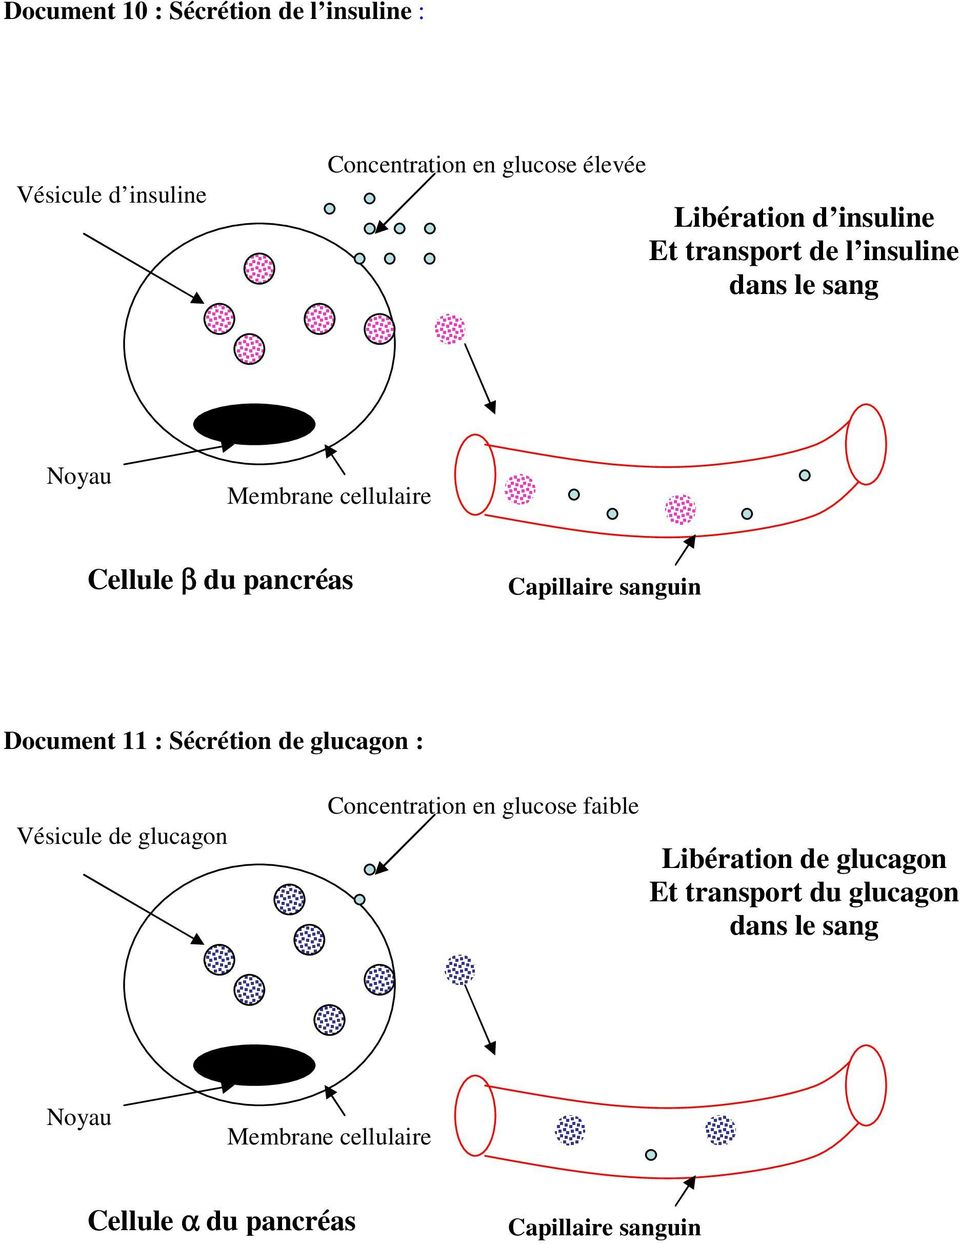 sanguin Document 11 : Sécrétion de glucagon : Vésicule de glucagon Concentration en glucose faible Libération